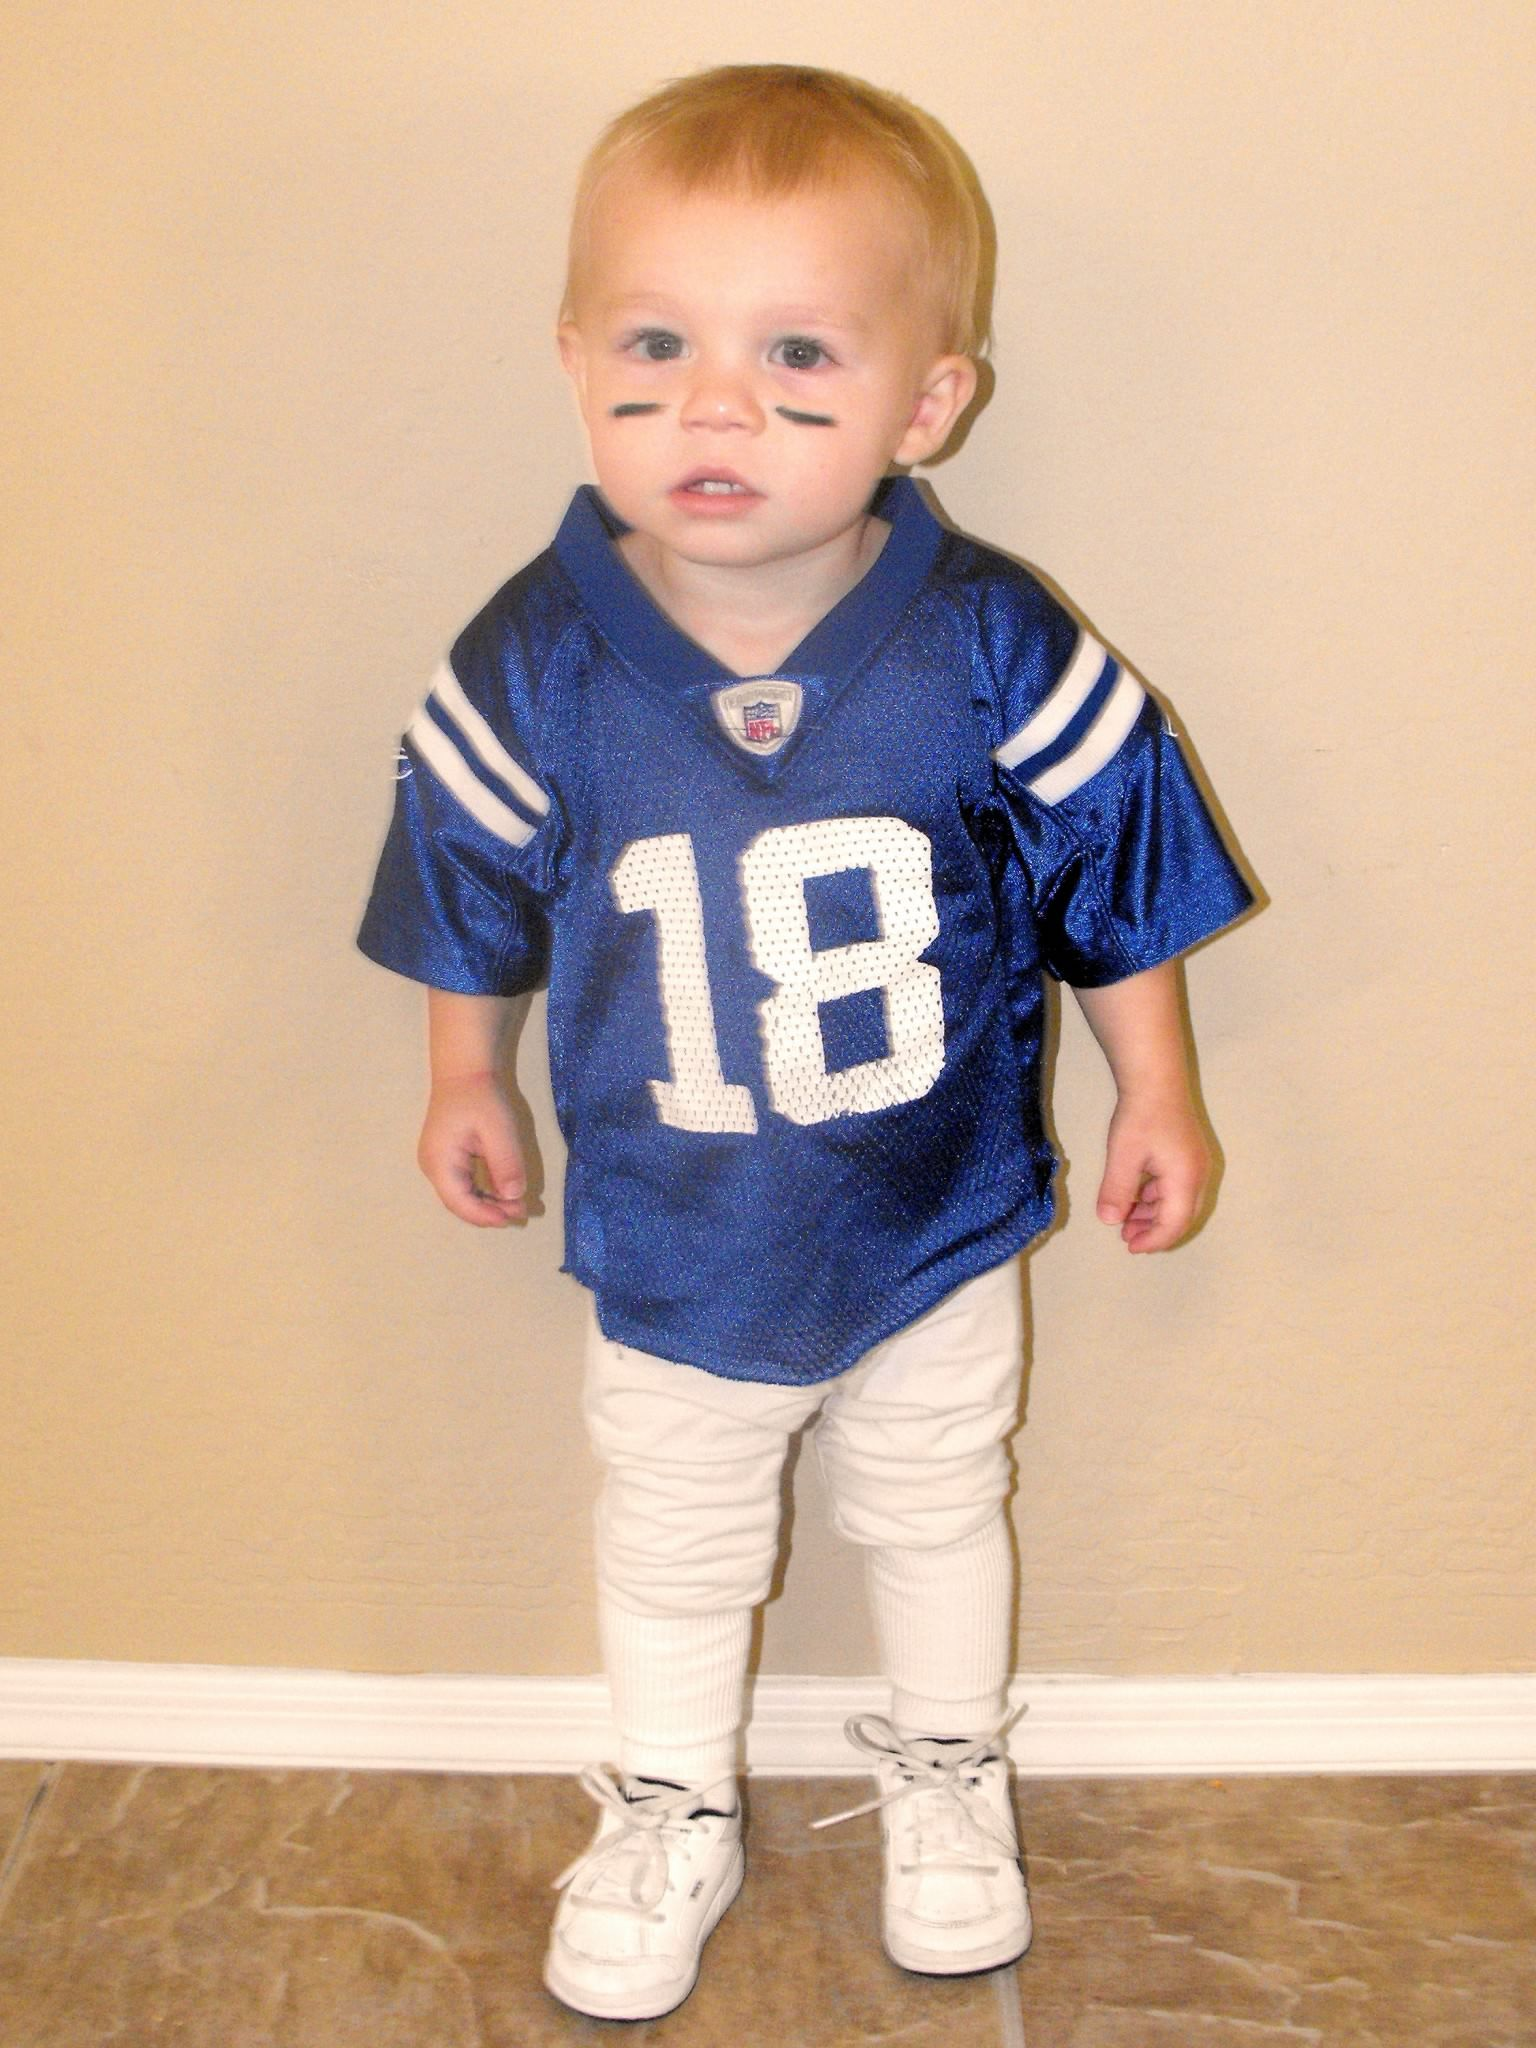 Hoop Hangout - Halloween - Little Boy Costume - Peyton Manning - Indianapolis Colts  sc 1 st  Pinterest & Hoop Hangout - Halloween - Little Boy Costume - Peyton Manning ...